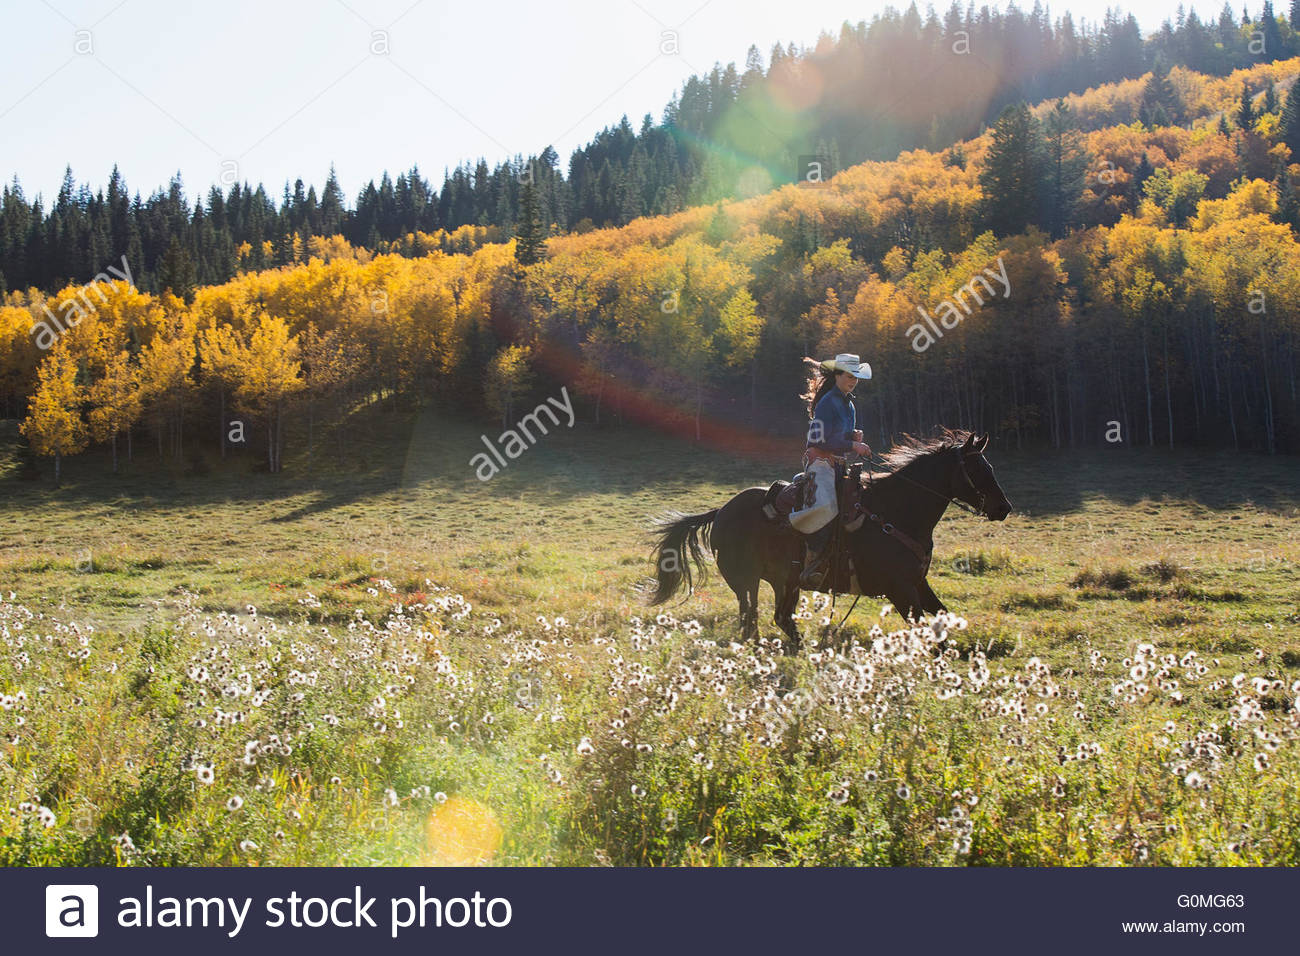 Woman horseback riding in sunny autumnal field - Stock Image